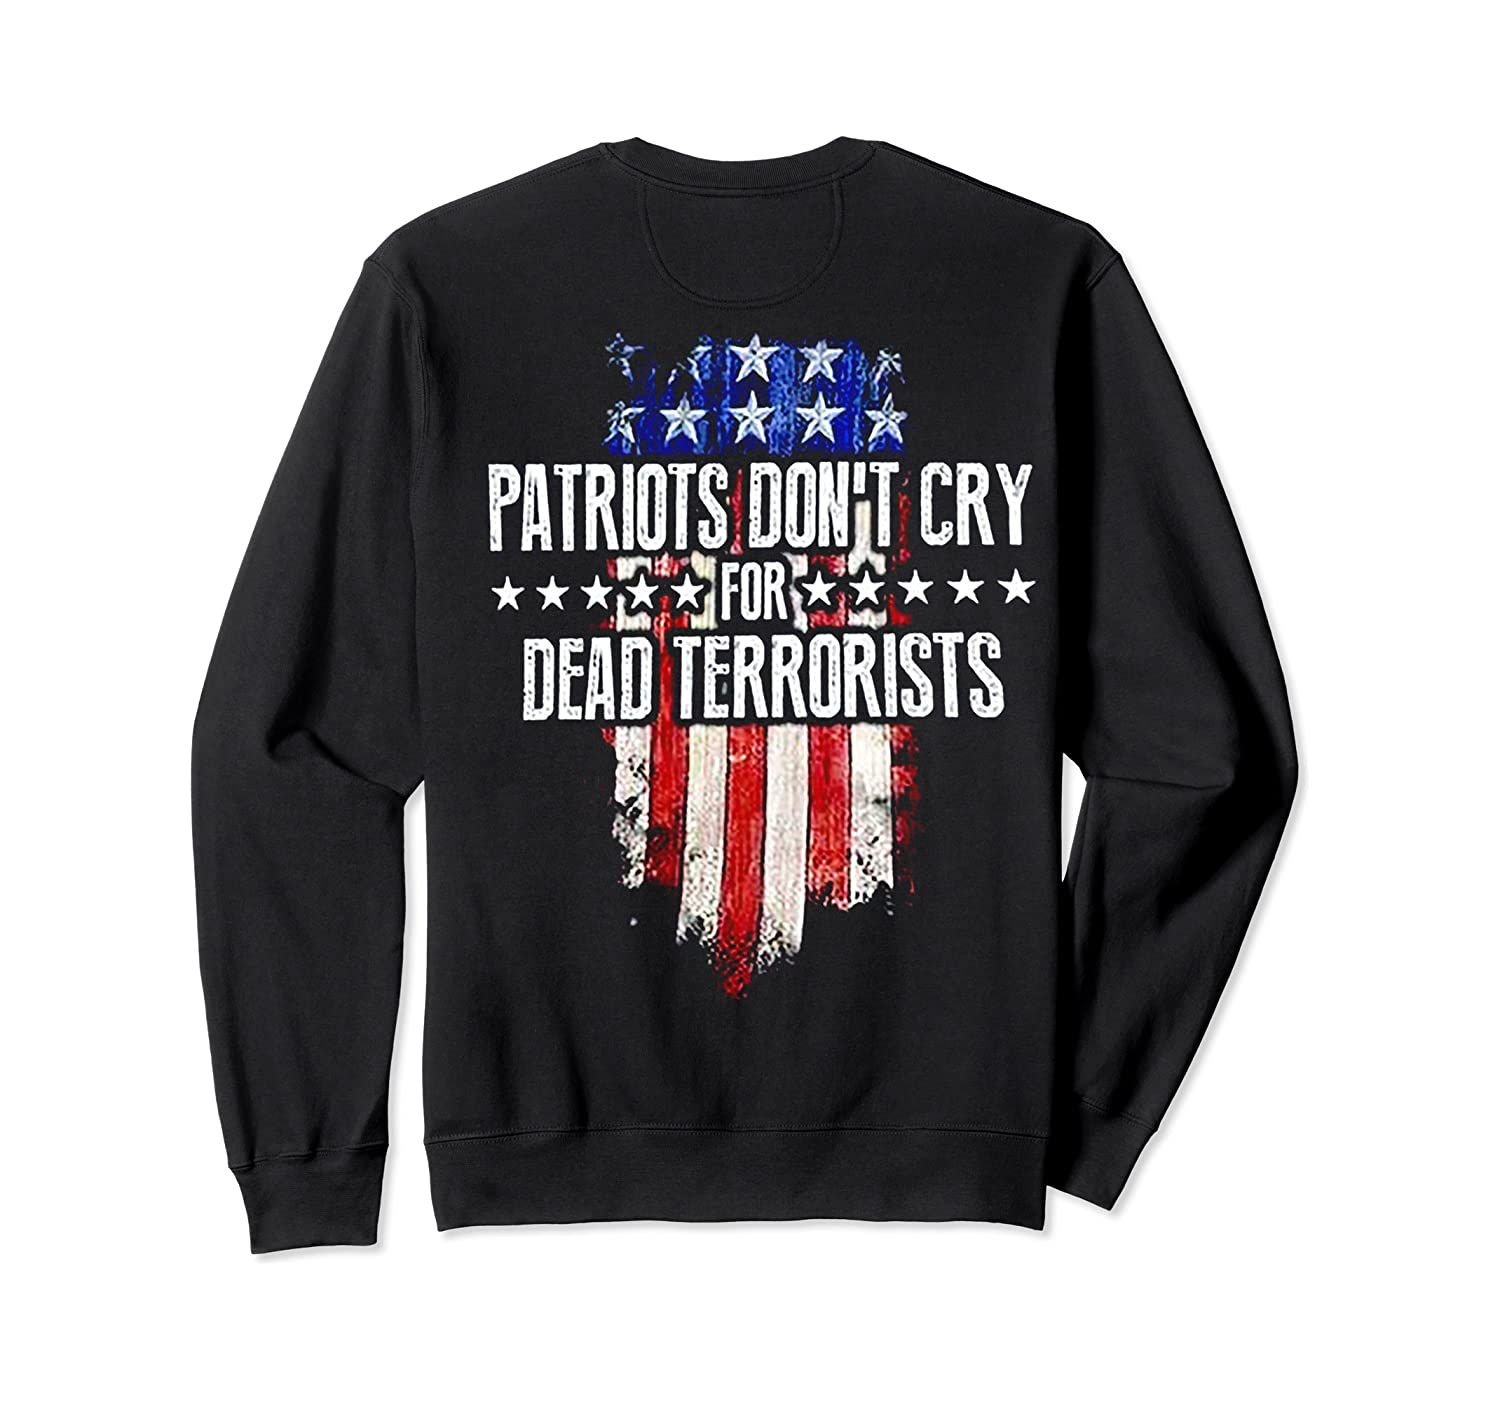 Patriots Don't Cry For Dead Terrorists (on back) Sweatshirt